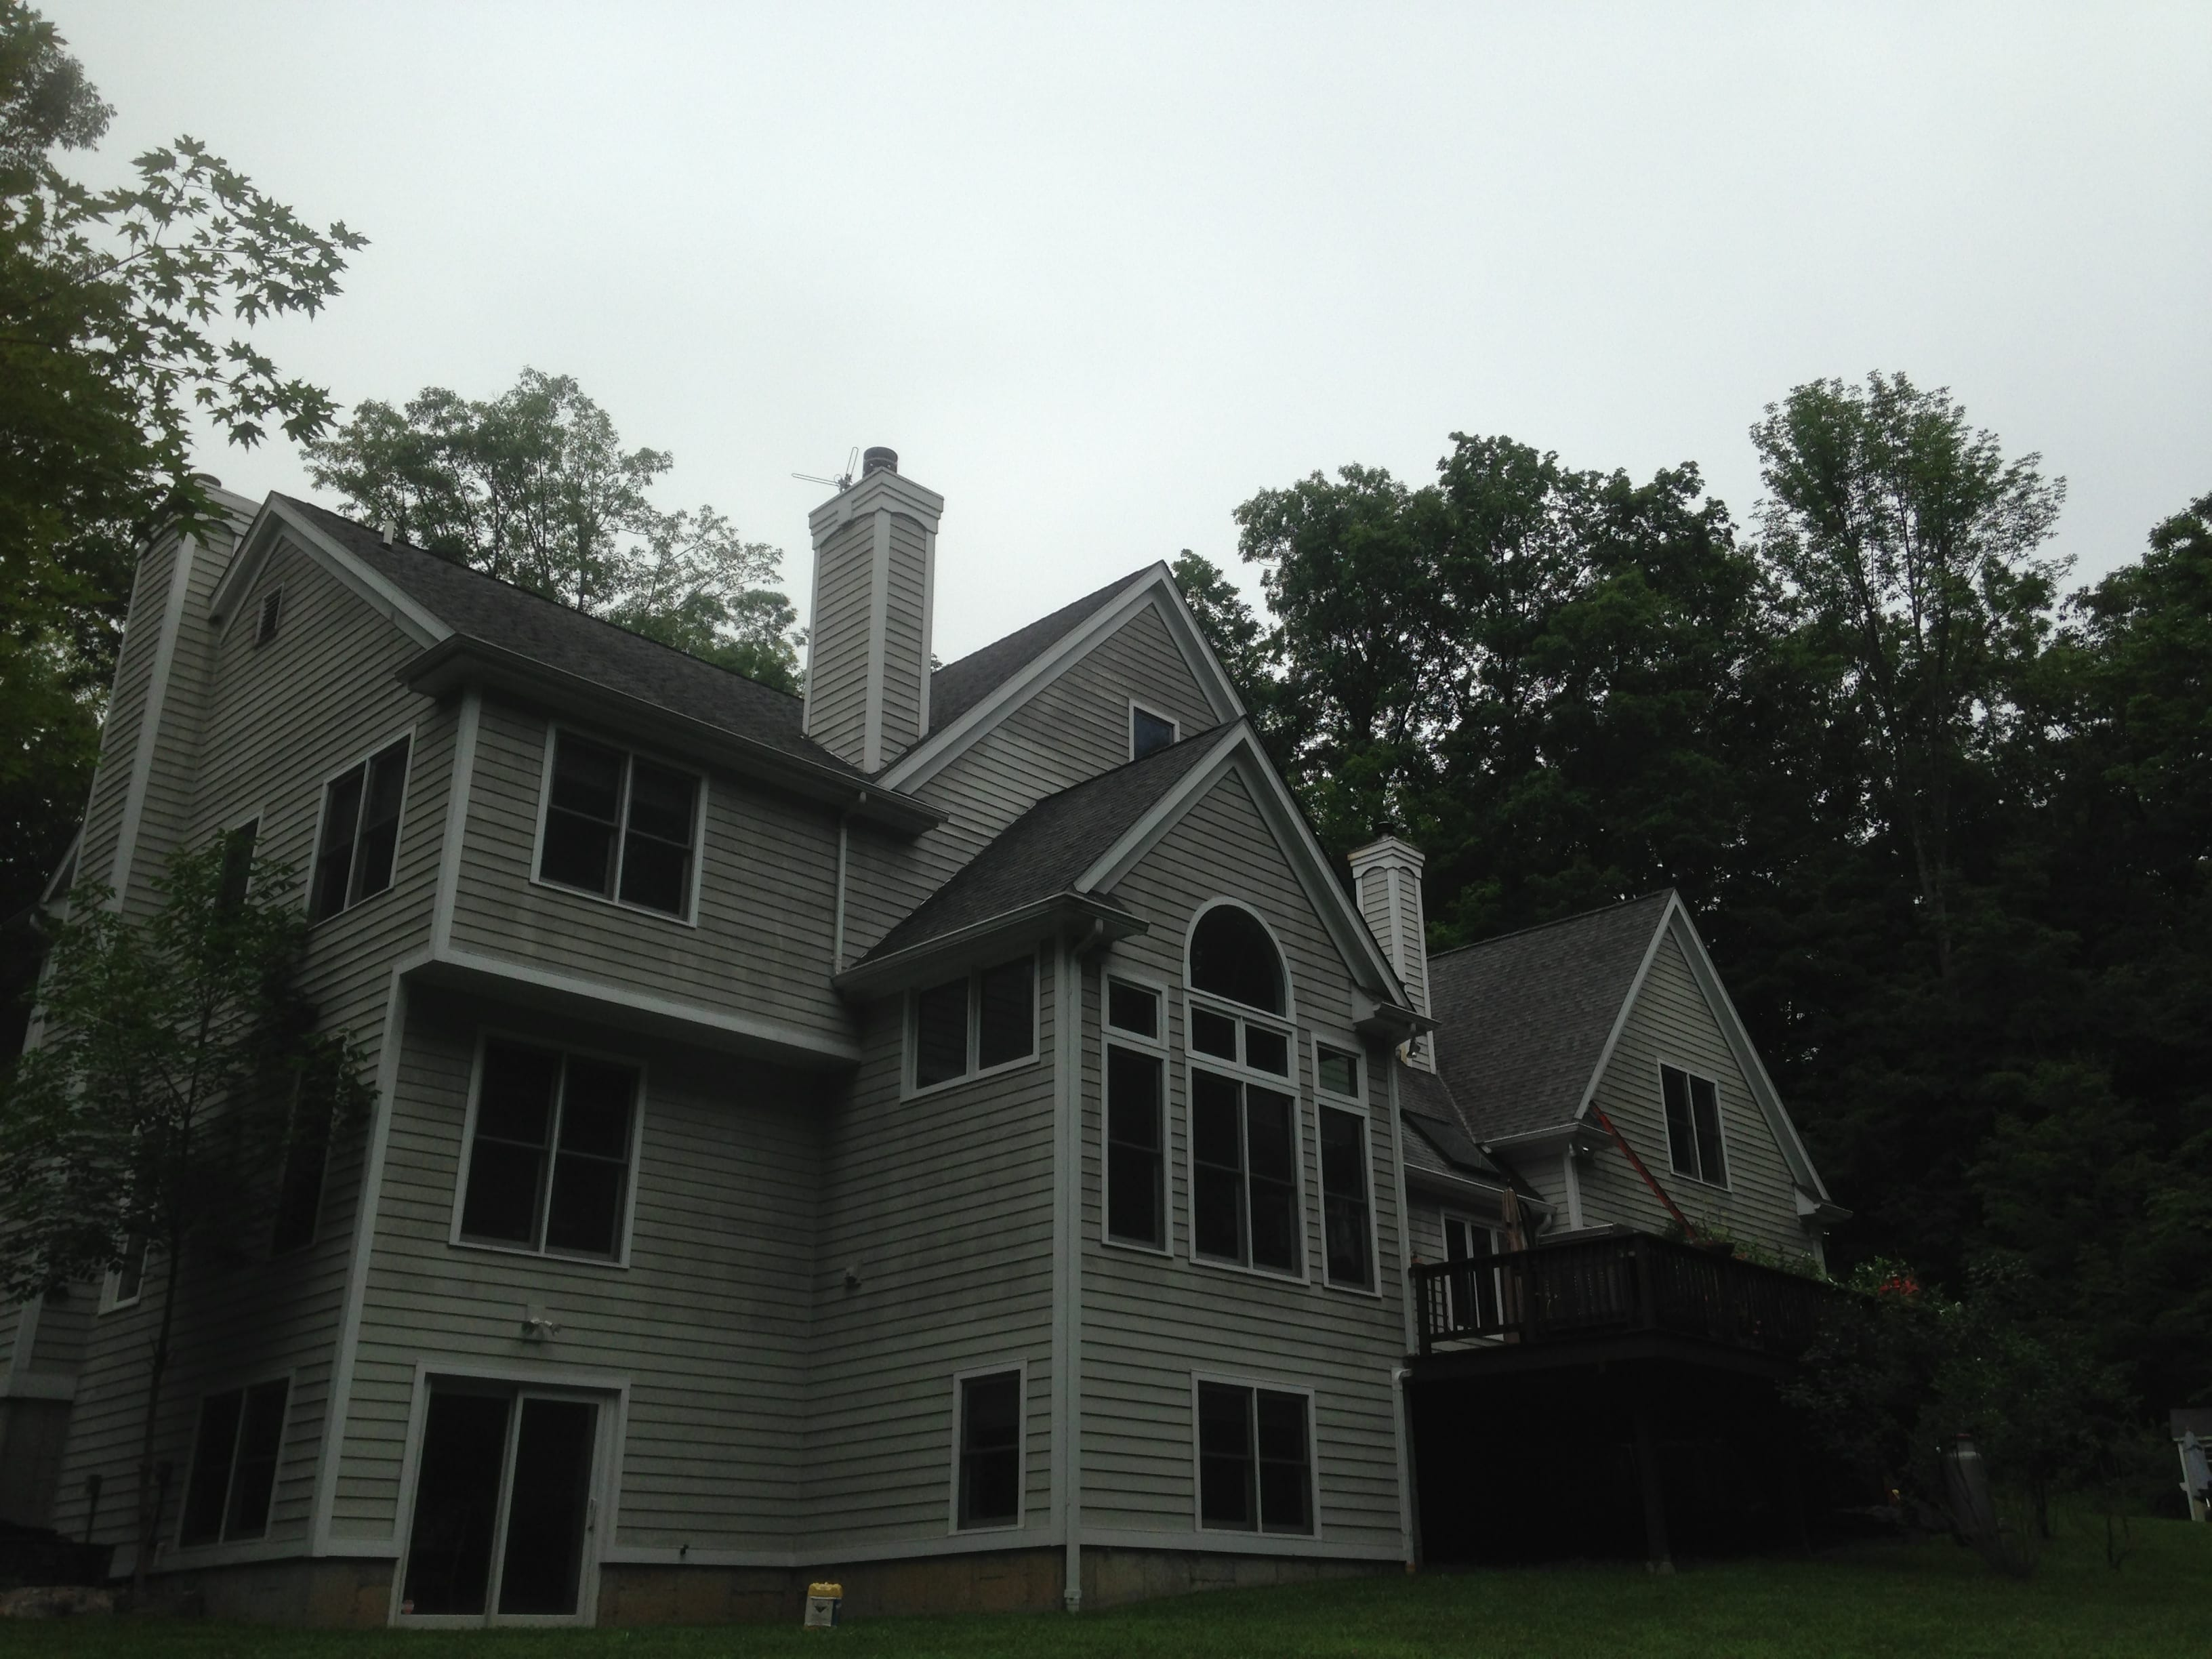 slate, tile, asphalt roof washing, pressure cleaning, Hawthorne soft roof washing, chappaqua roof cleaning, residential house cleaning, home exterior, roof cleaning, katonah, rye, armonk, westchester power washing